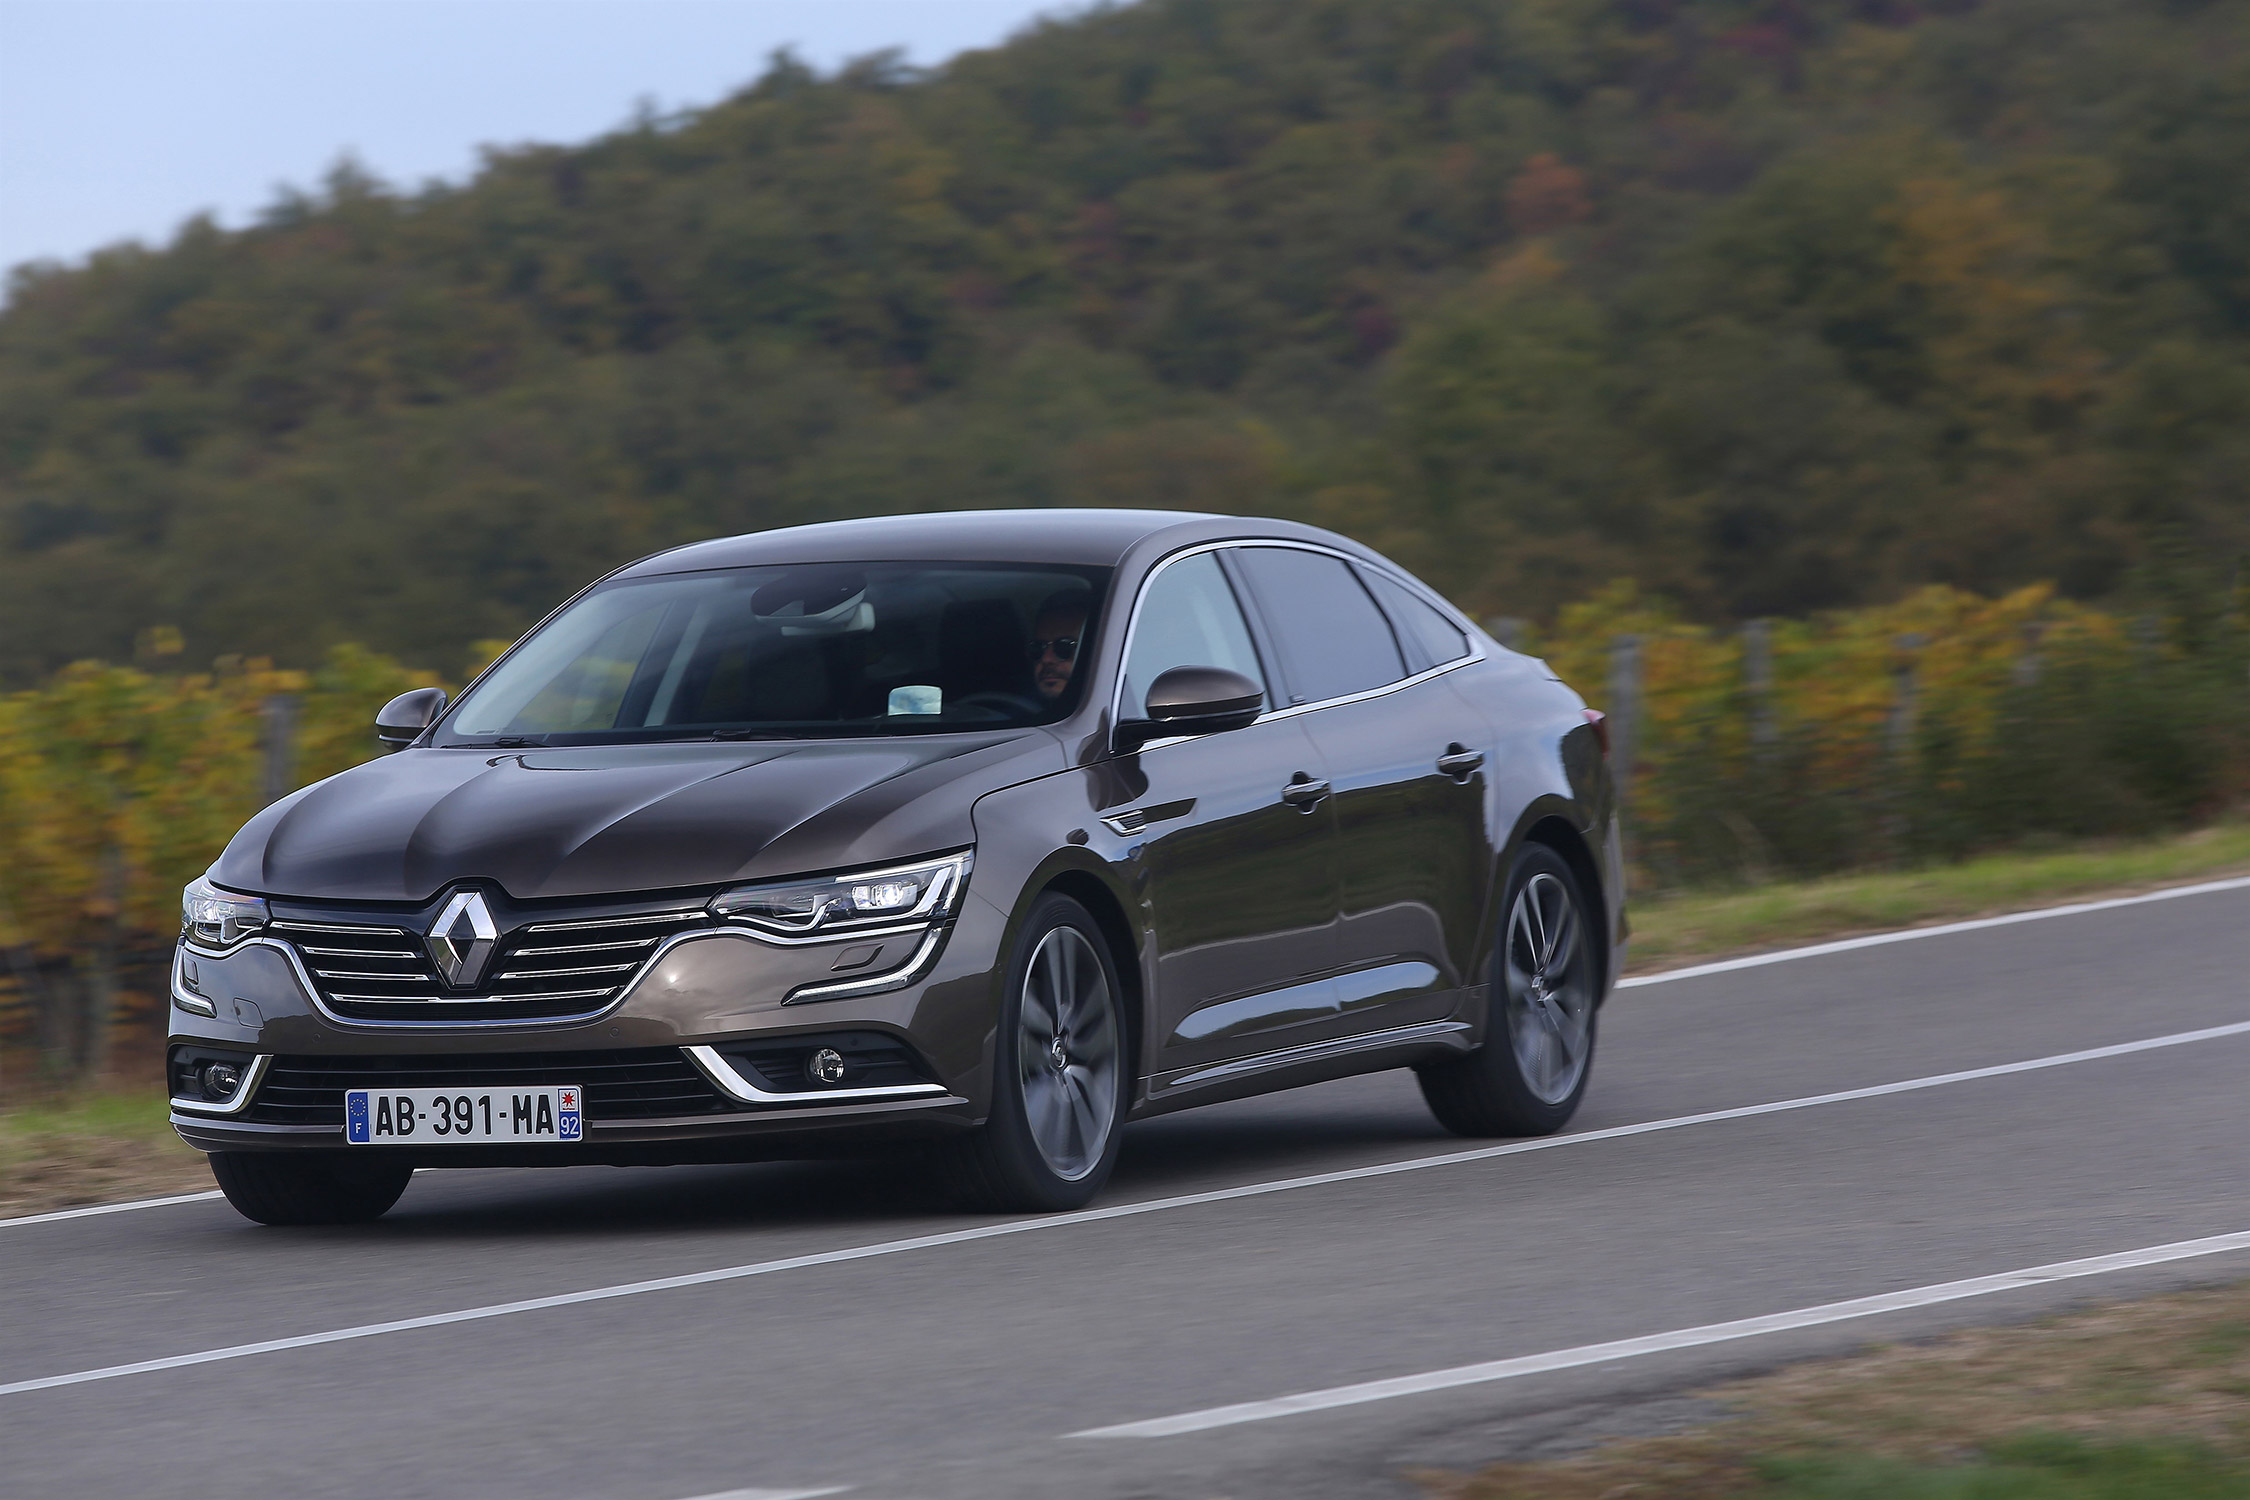 essai renault talisman 1 6 tce 200 ch motorlegend. Black Bedroom Furniture Sets. Home Design Ideas